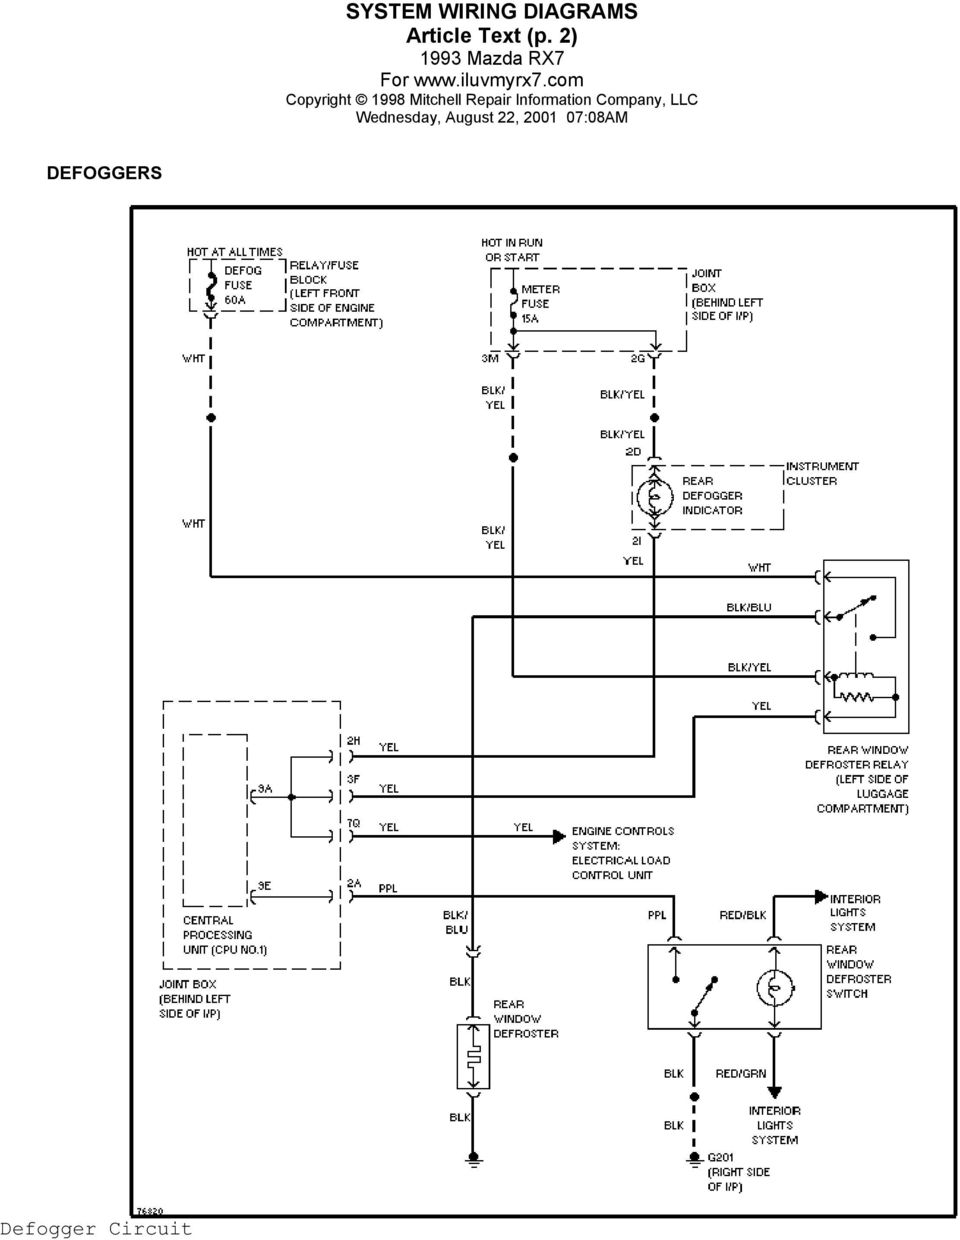 This File Is Available For Free Download At Pdf Induction Furnace Diagram Wiring Schematic 4 System Diagrams Article Text P 3 Horn Circuit Power Antenna